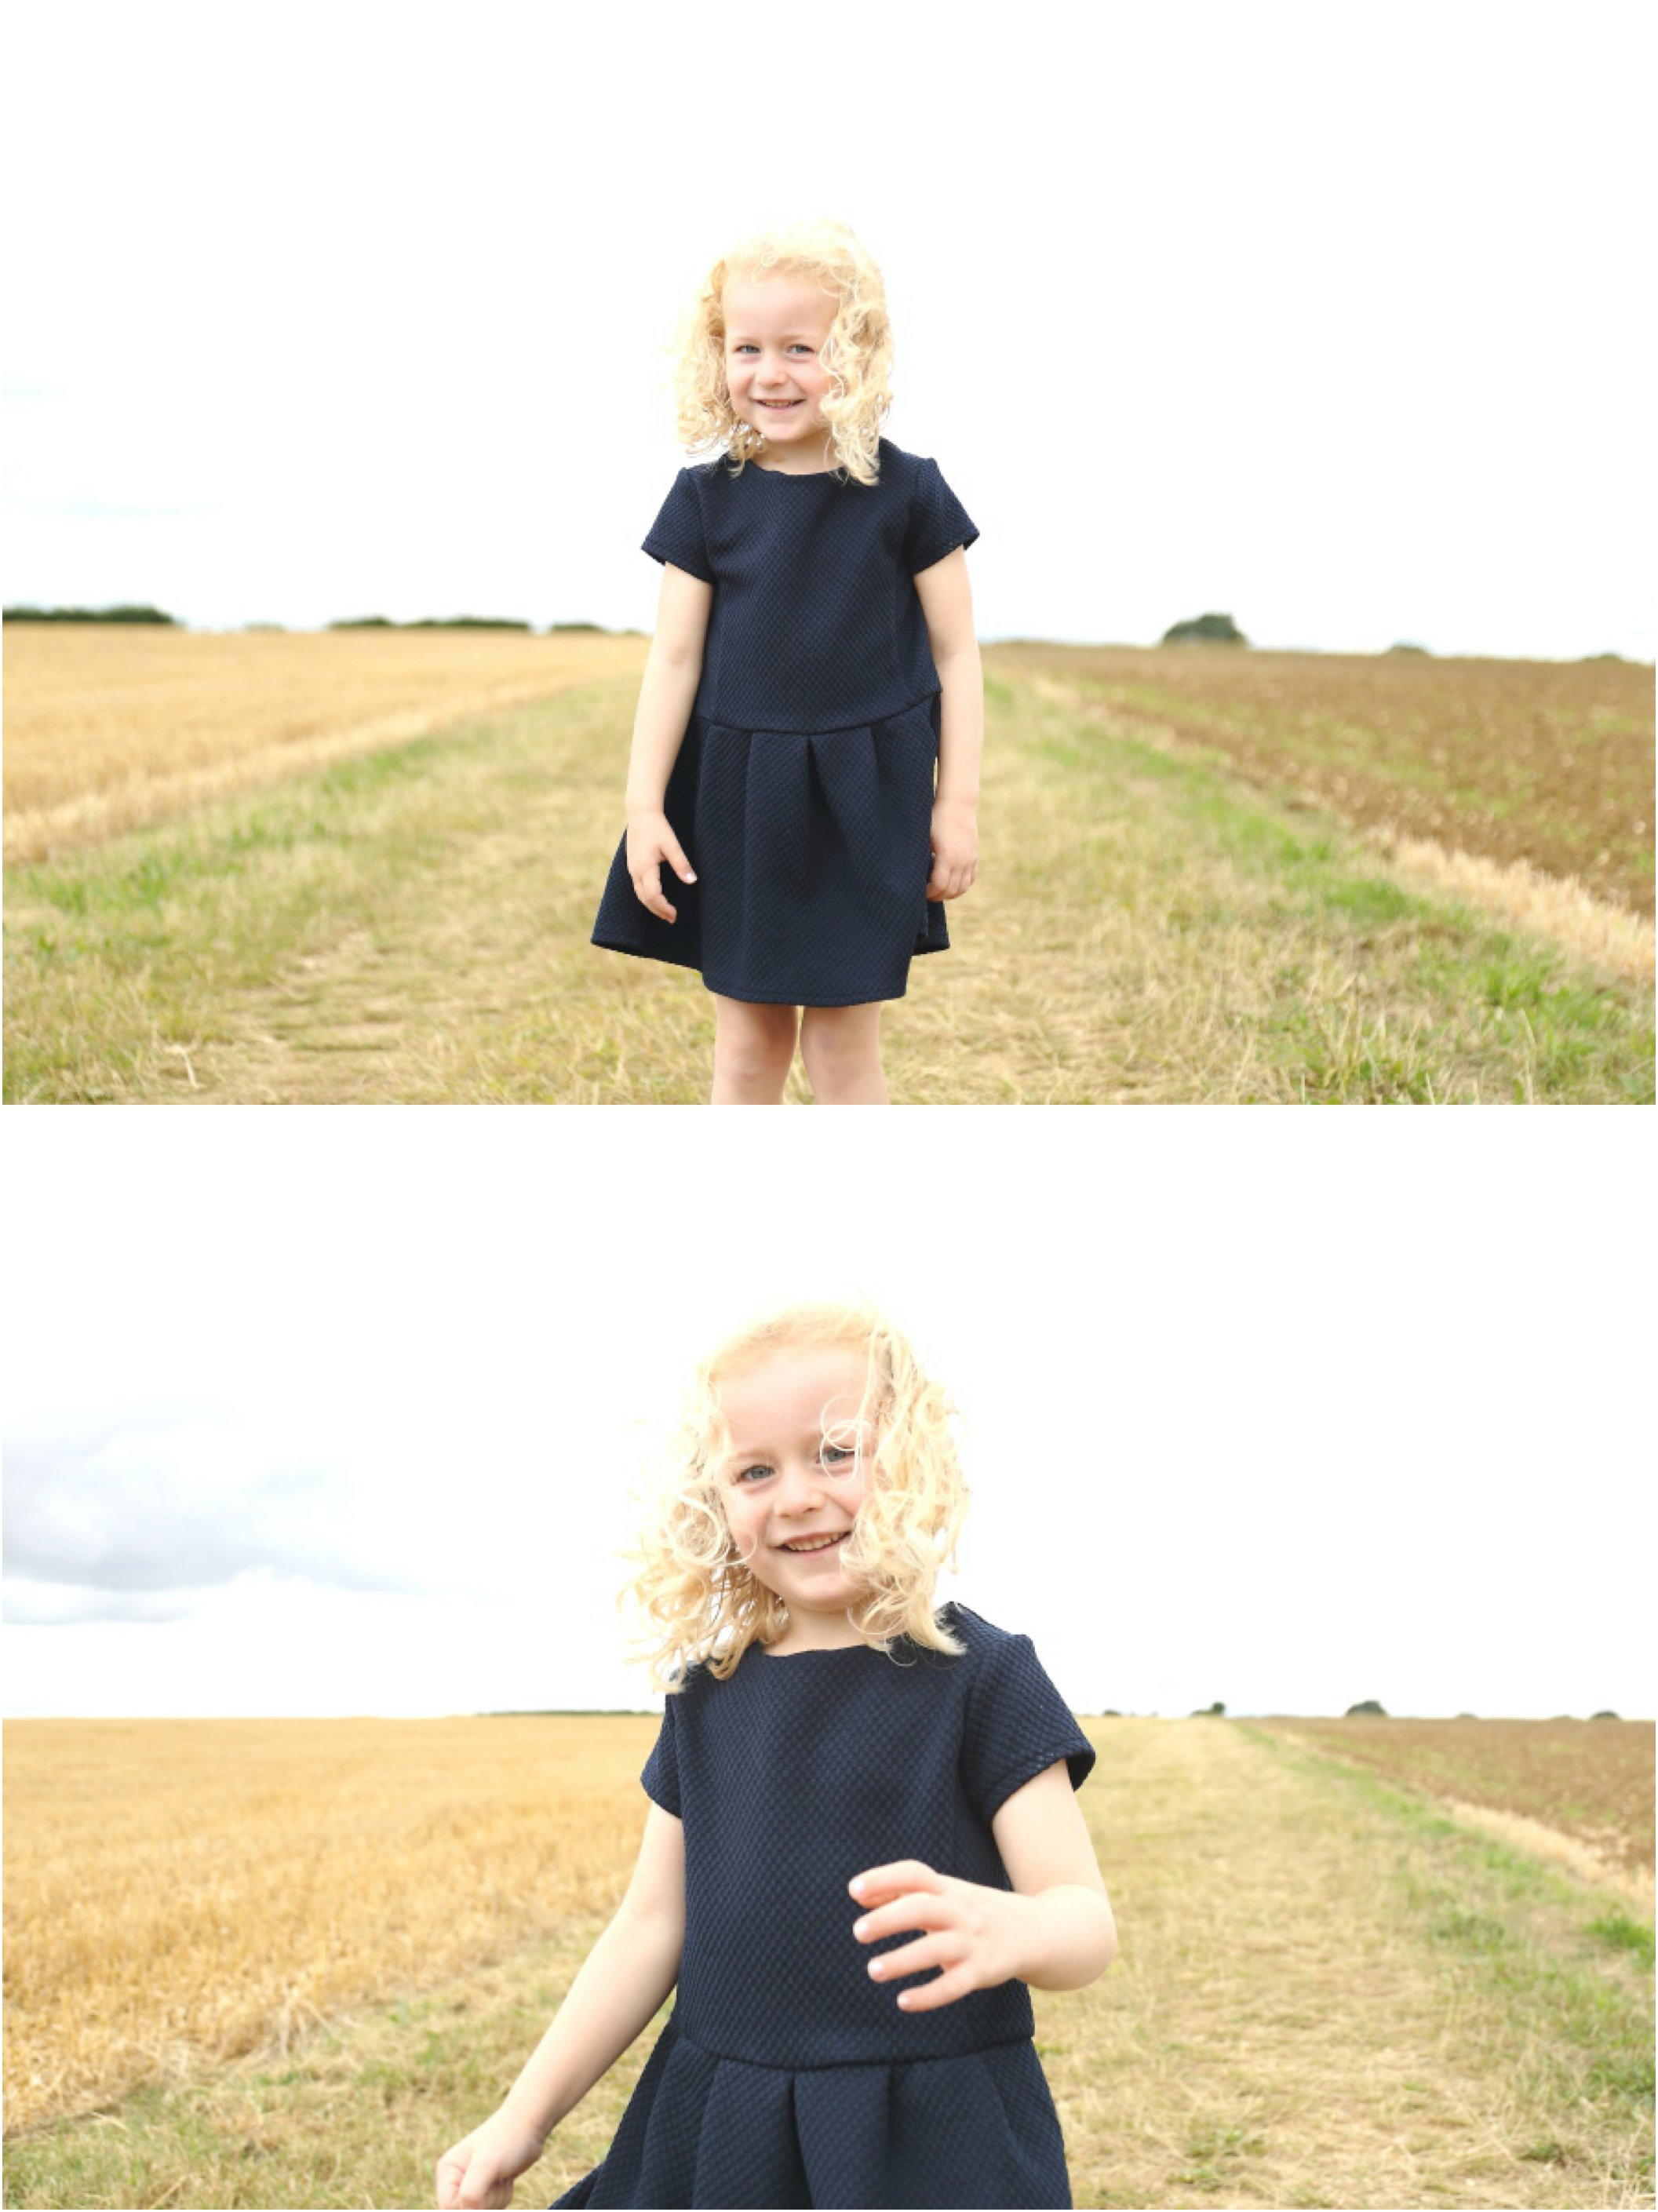 cheeky little girl in corn field family photo session in Suffolk